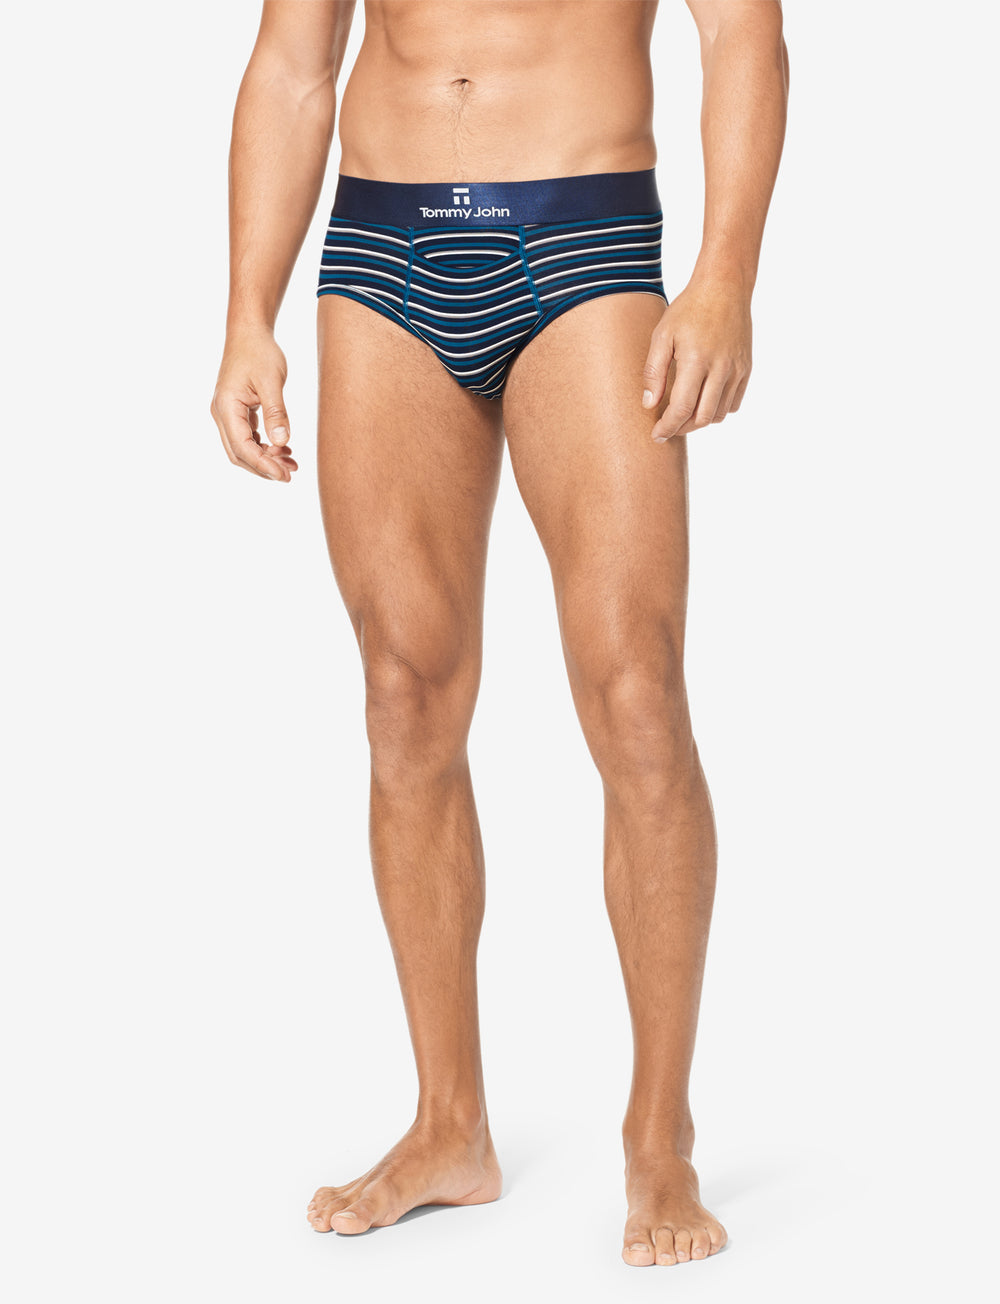 Second Skin Dress Blues Titanium Stripe Brief 2.0 Details Image